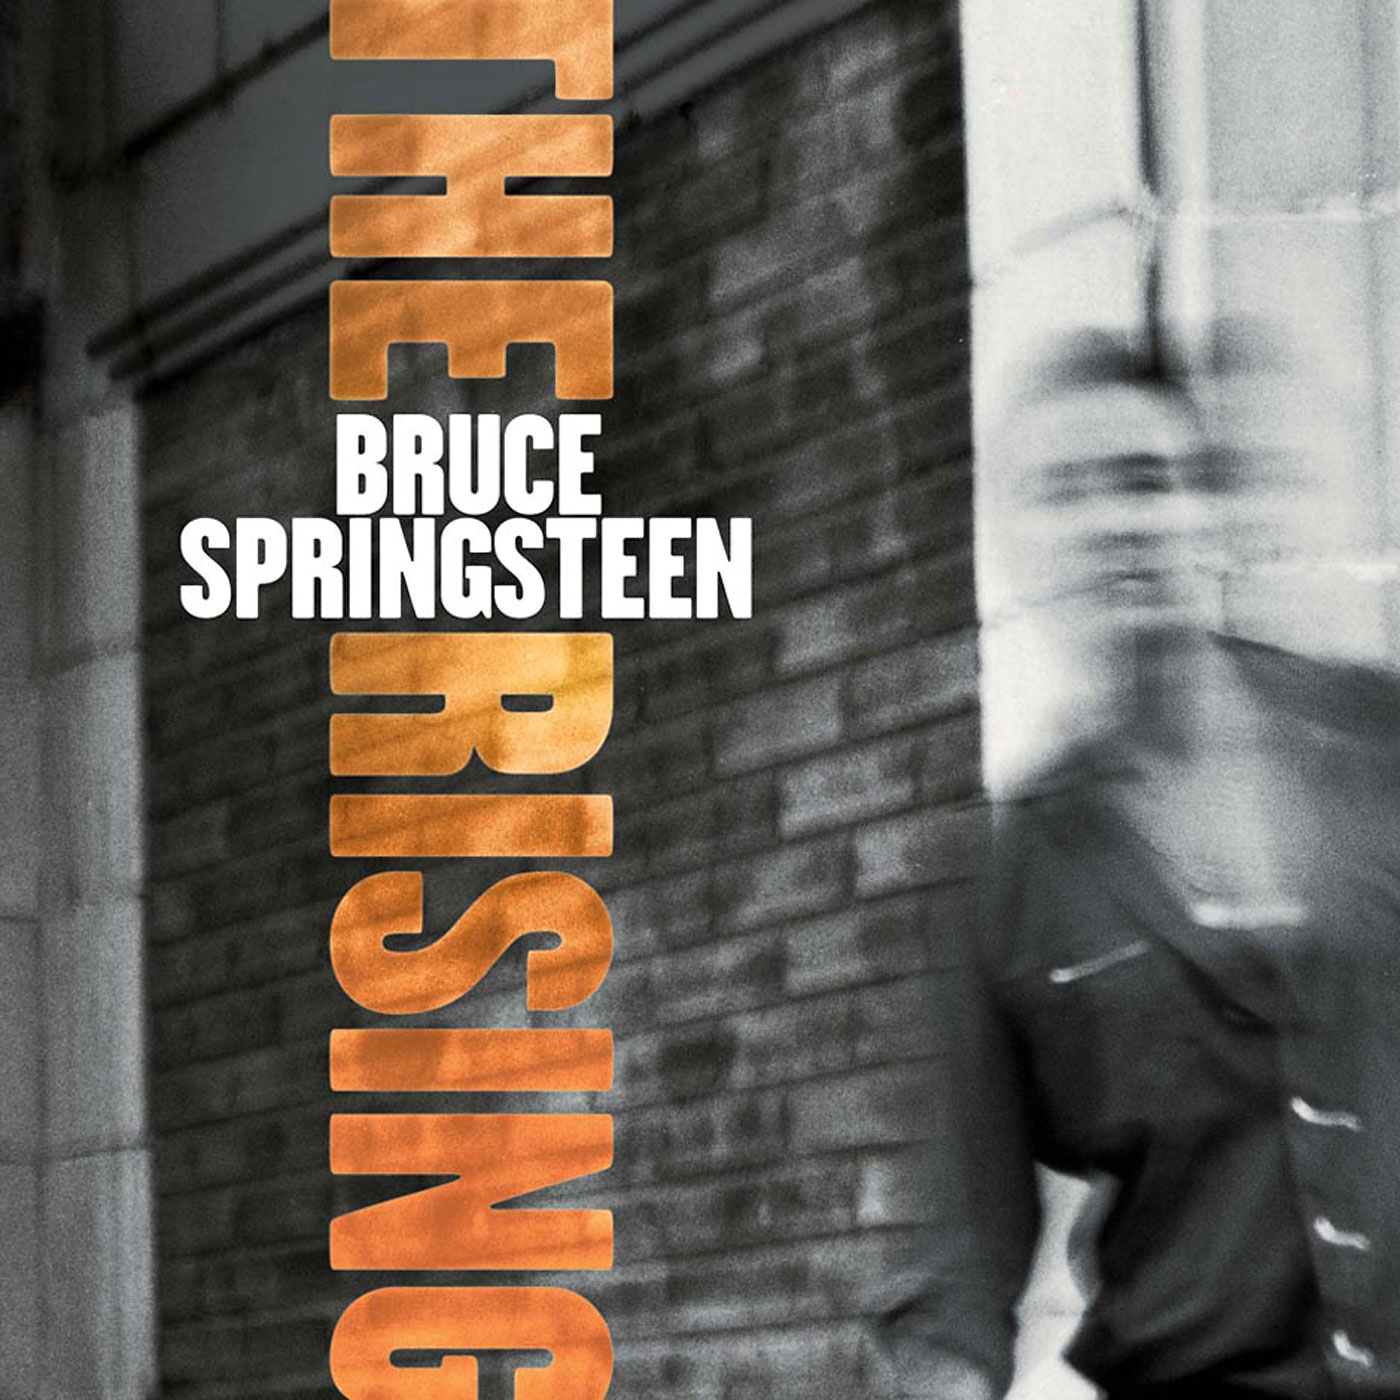 2002:                                The release of The Rising was one of the first works in any medium to directly deal with the attacks of 9/11. The album marked the first time Springsteen was back in the studio with the E Street band, reuniting with his backing band to craft the 15-song album that encouraged the nation to rise above a national tragedy.